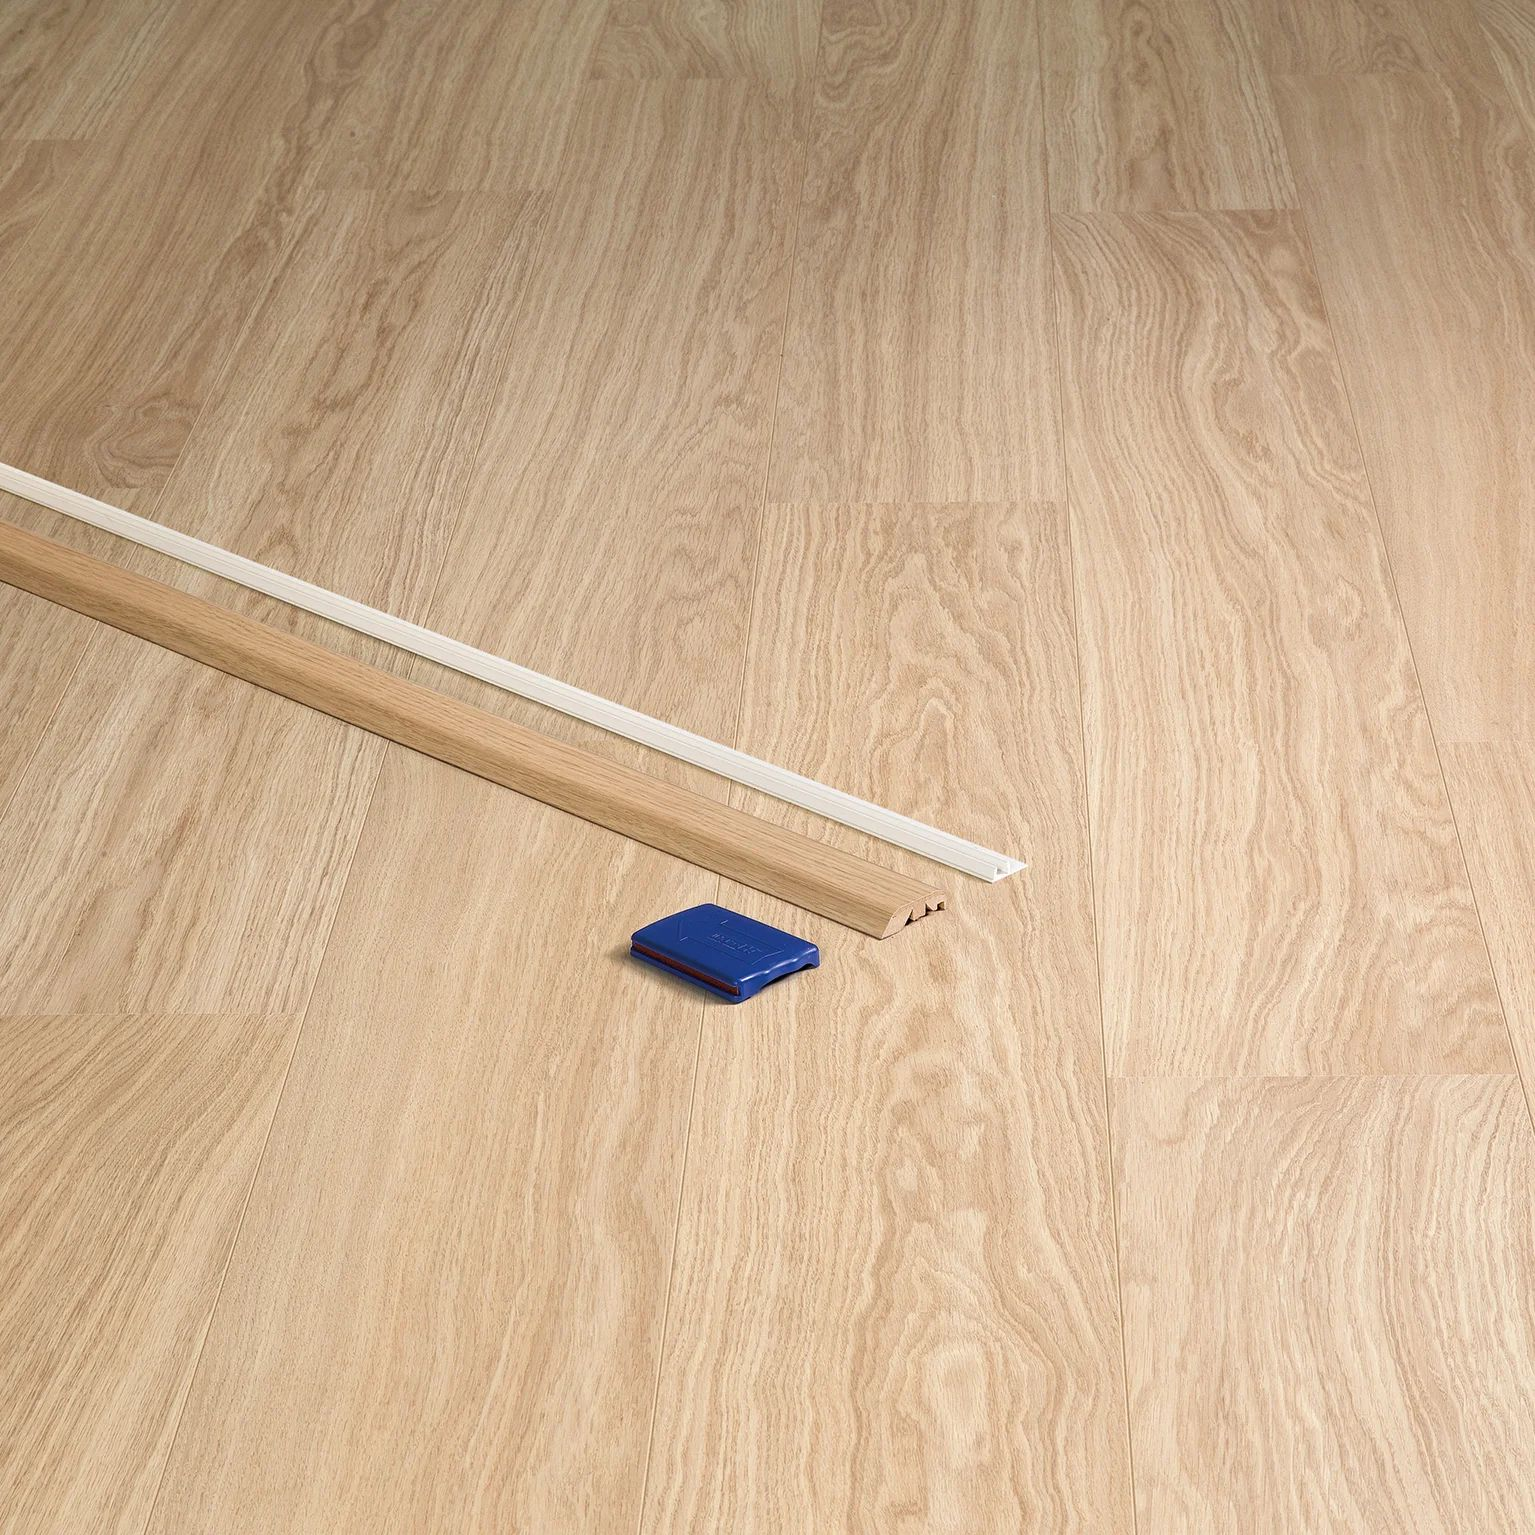 Barre De Seuil L 48 Mm X L 215 Cm Sens By Quick Step Niagara Leroy Merlin